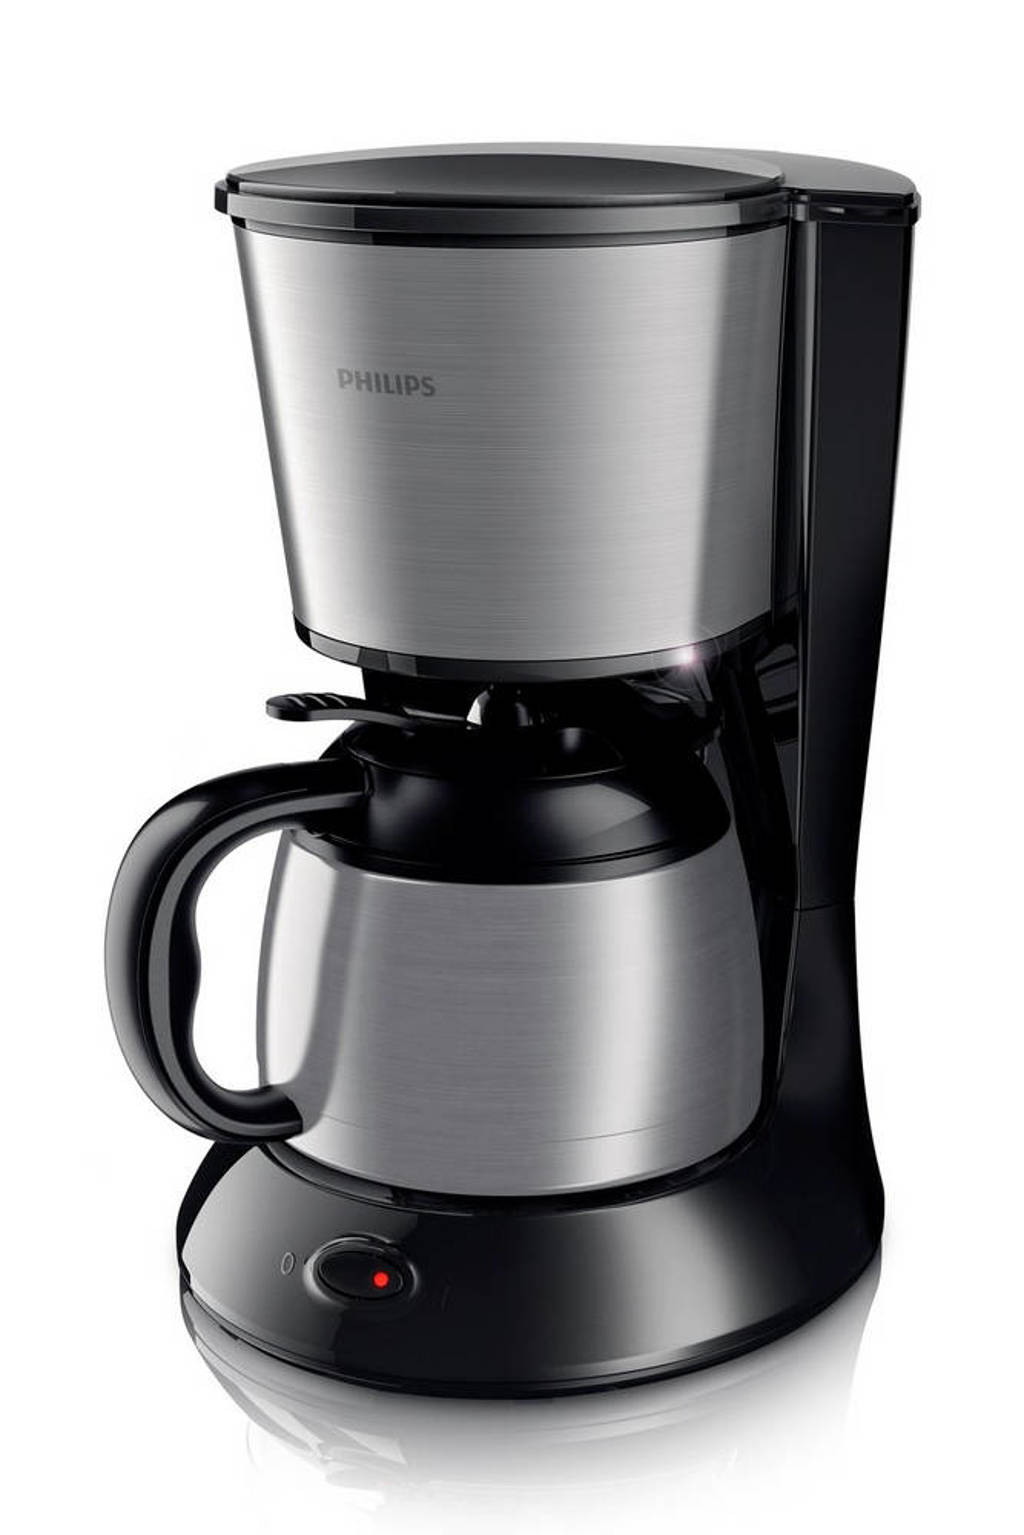 Philips HD7478/20 Daily Collection koffiezetapparaat, Zwart, Roestvrij staal